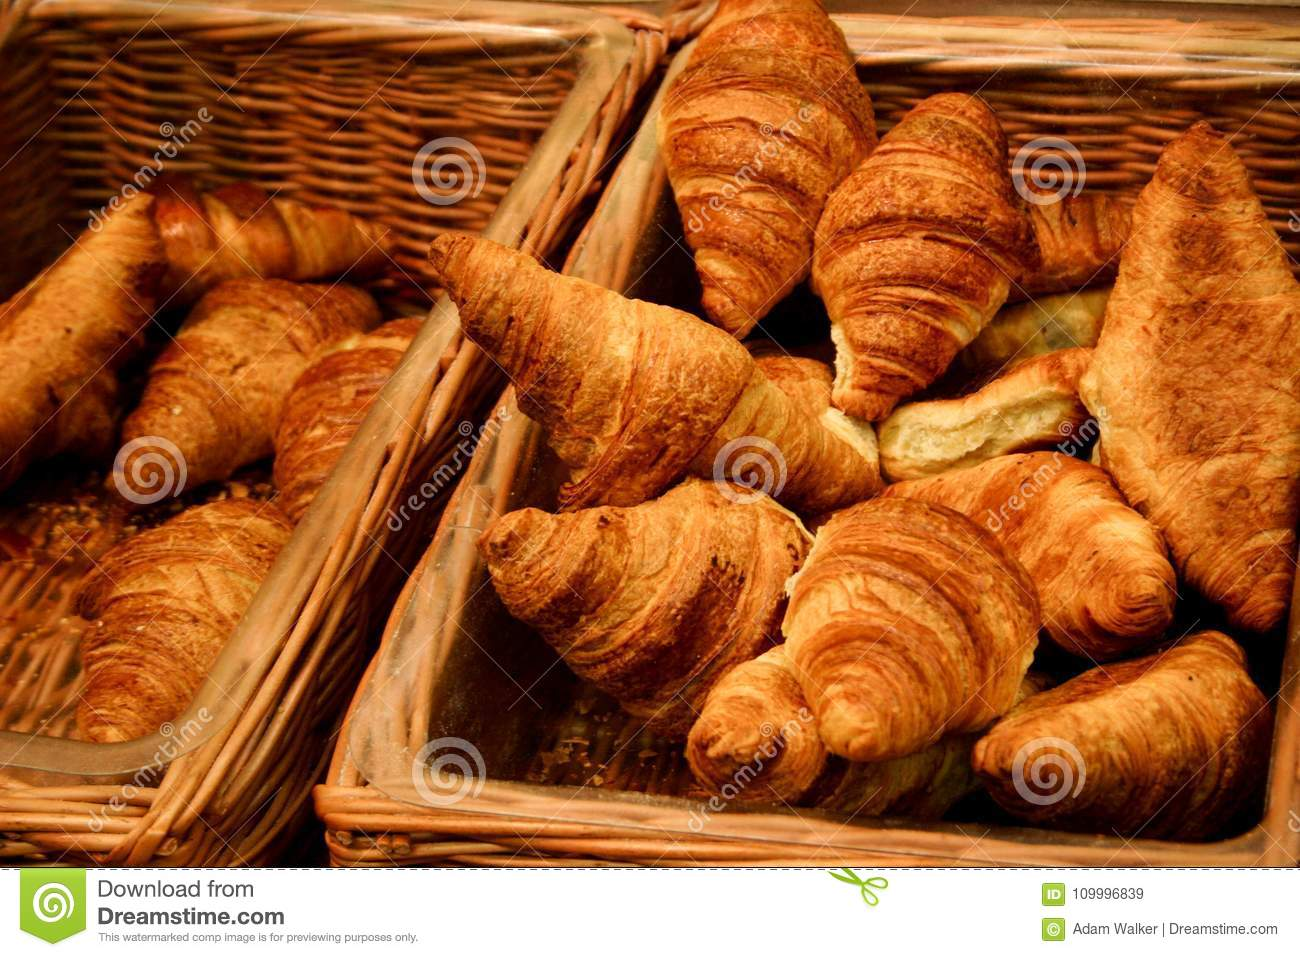 Puffy Golden Brown Croissants In Sales Wicker Baskets Freshly Baked